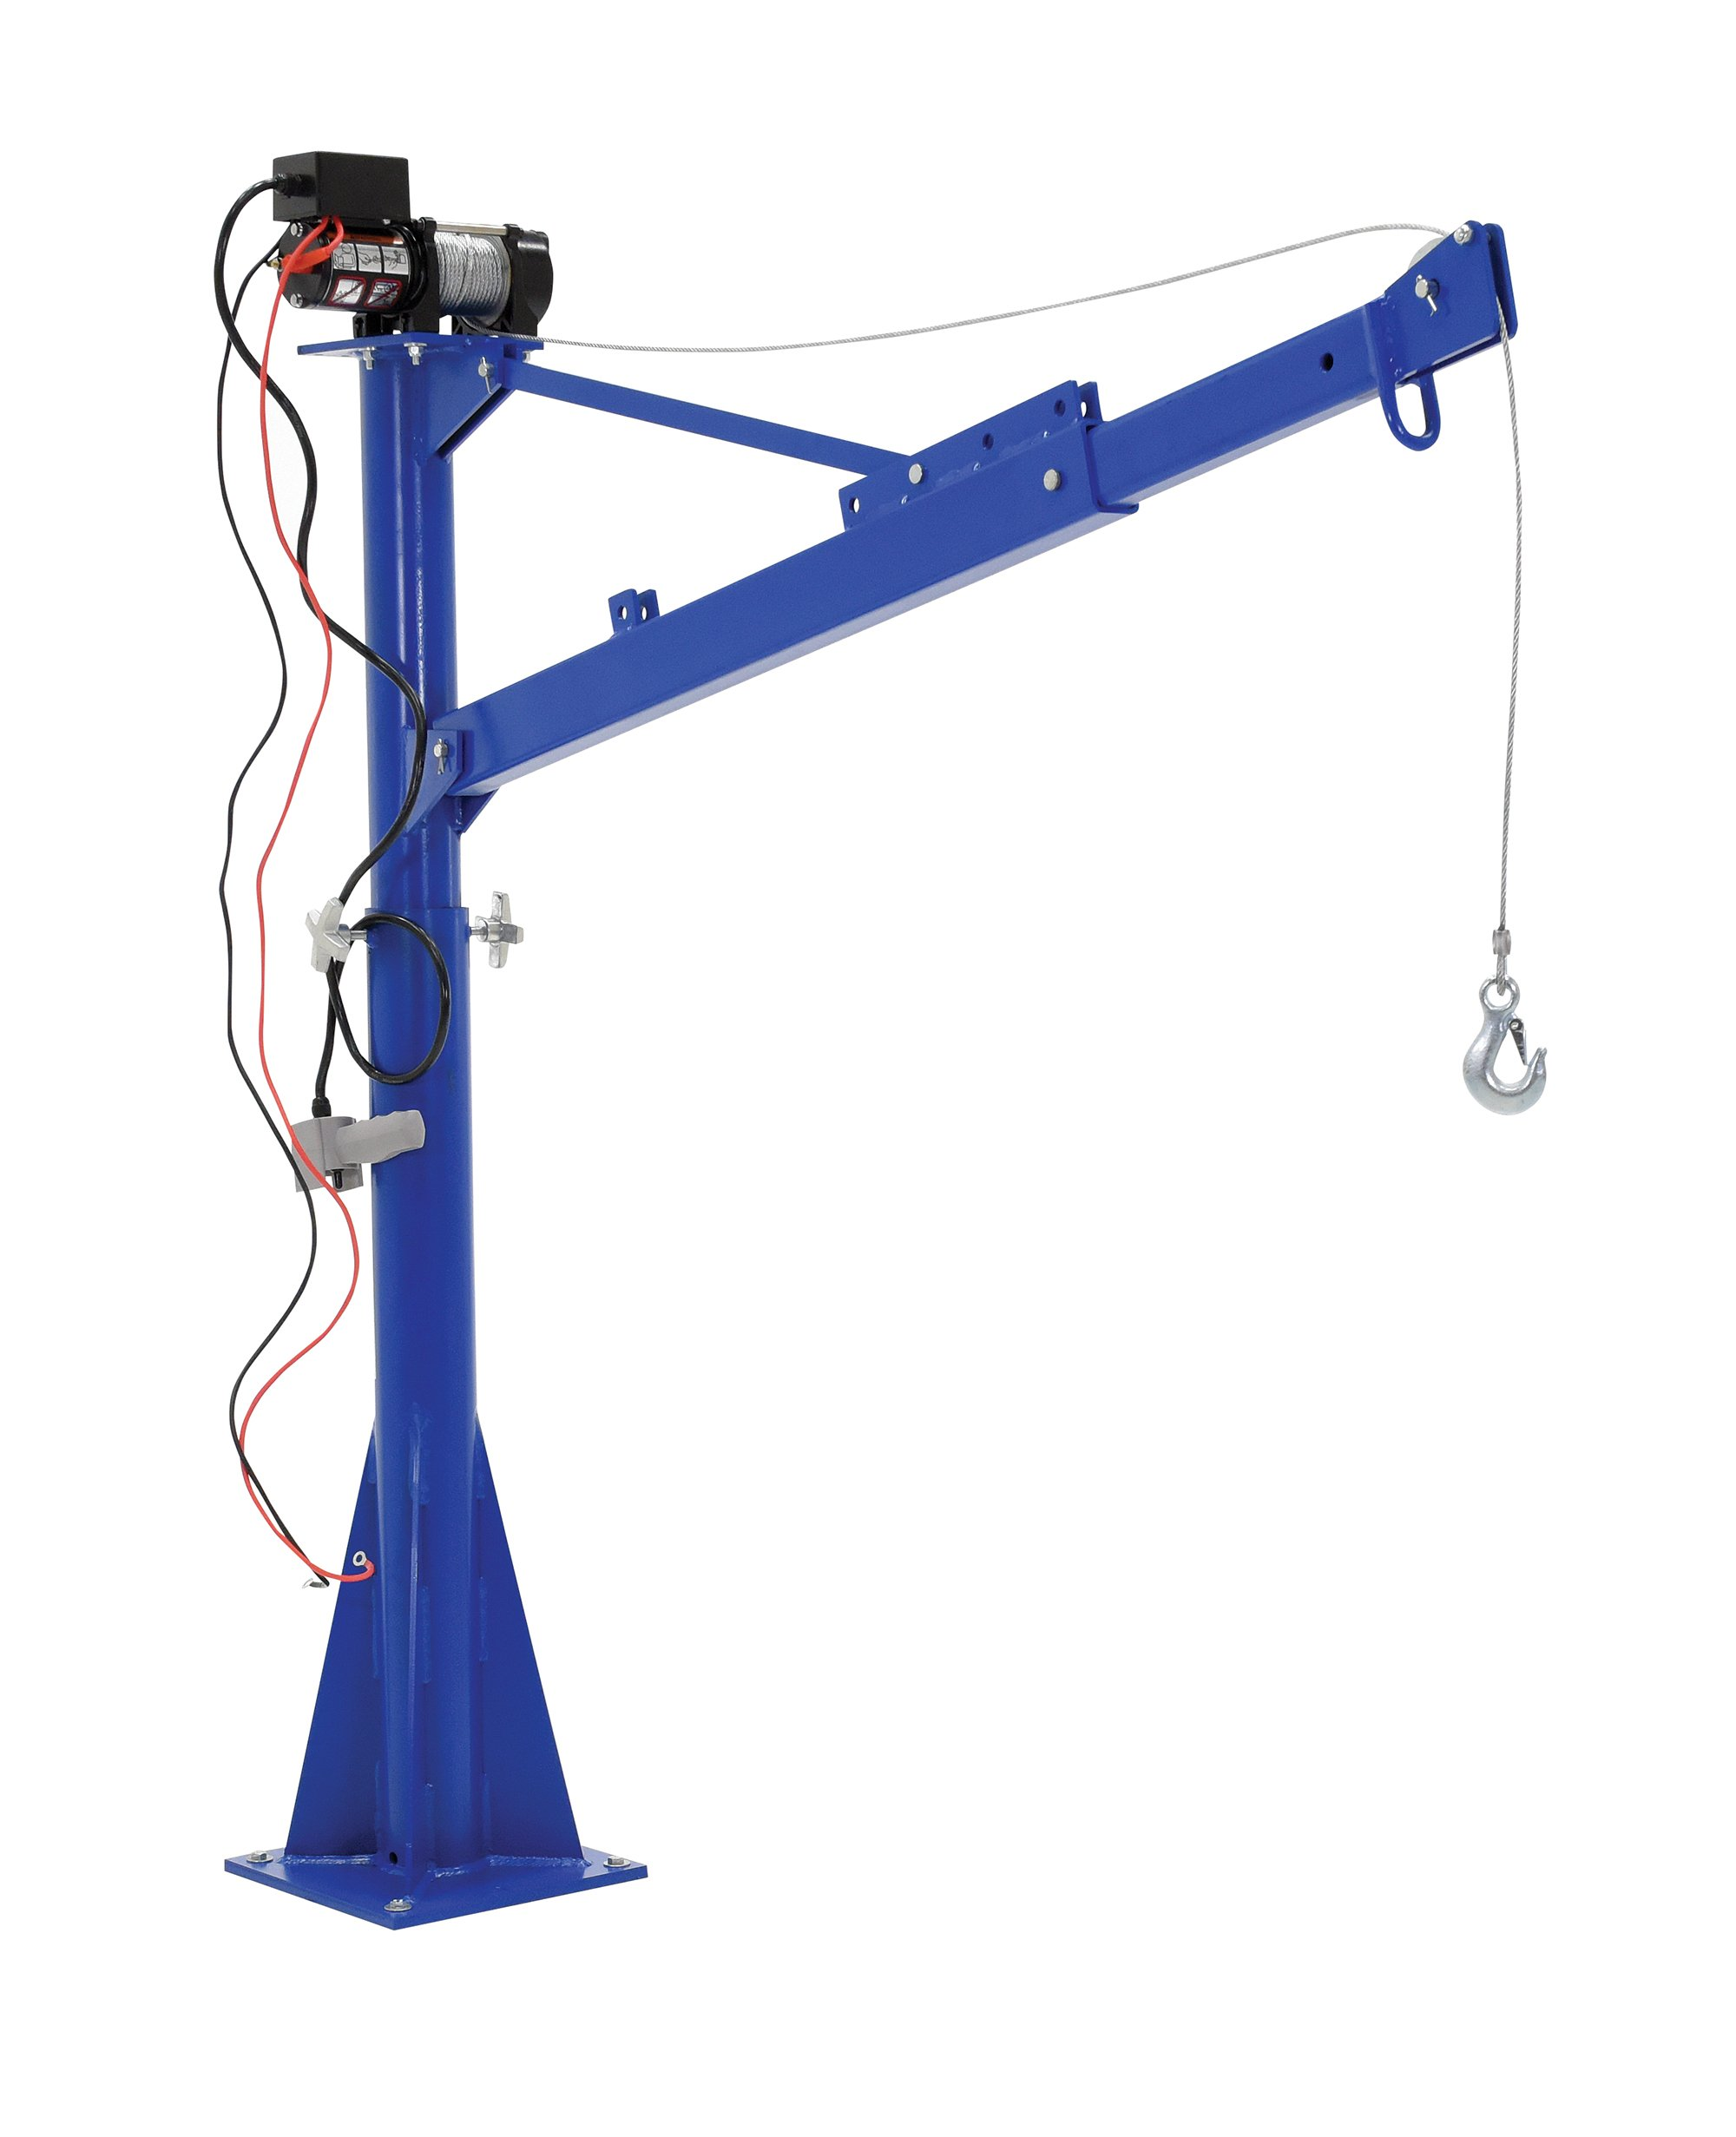 Vestil WTJ-E-15-3-DC 12V DC Power Lift Jib Crane, Steel, 1500 lb. Capacity, 46' Cable Length, 65-11/16'' Height